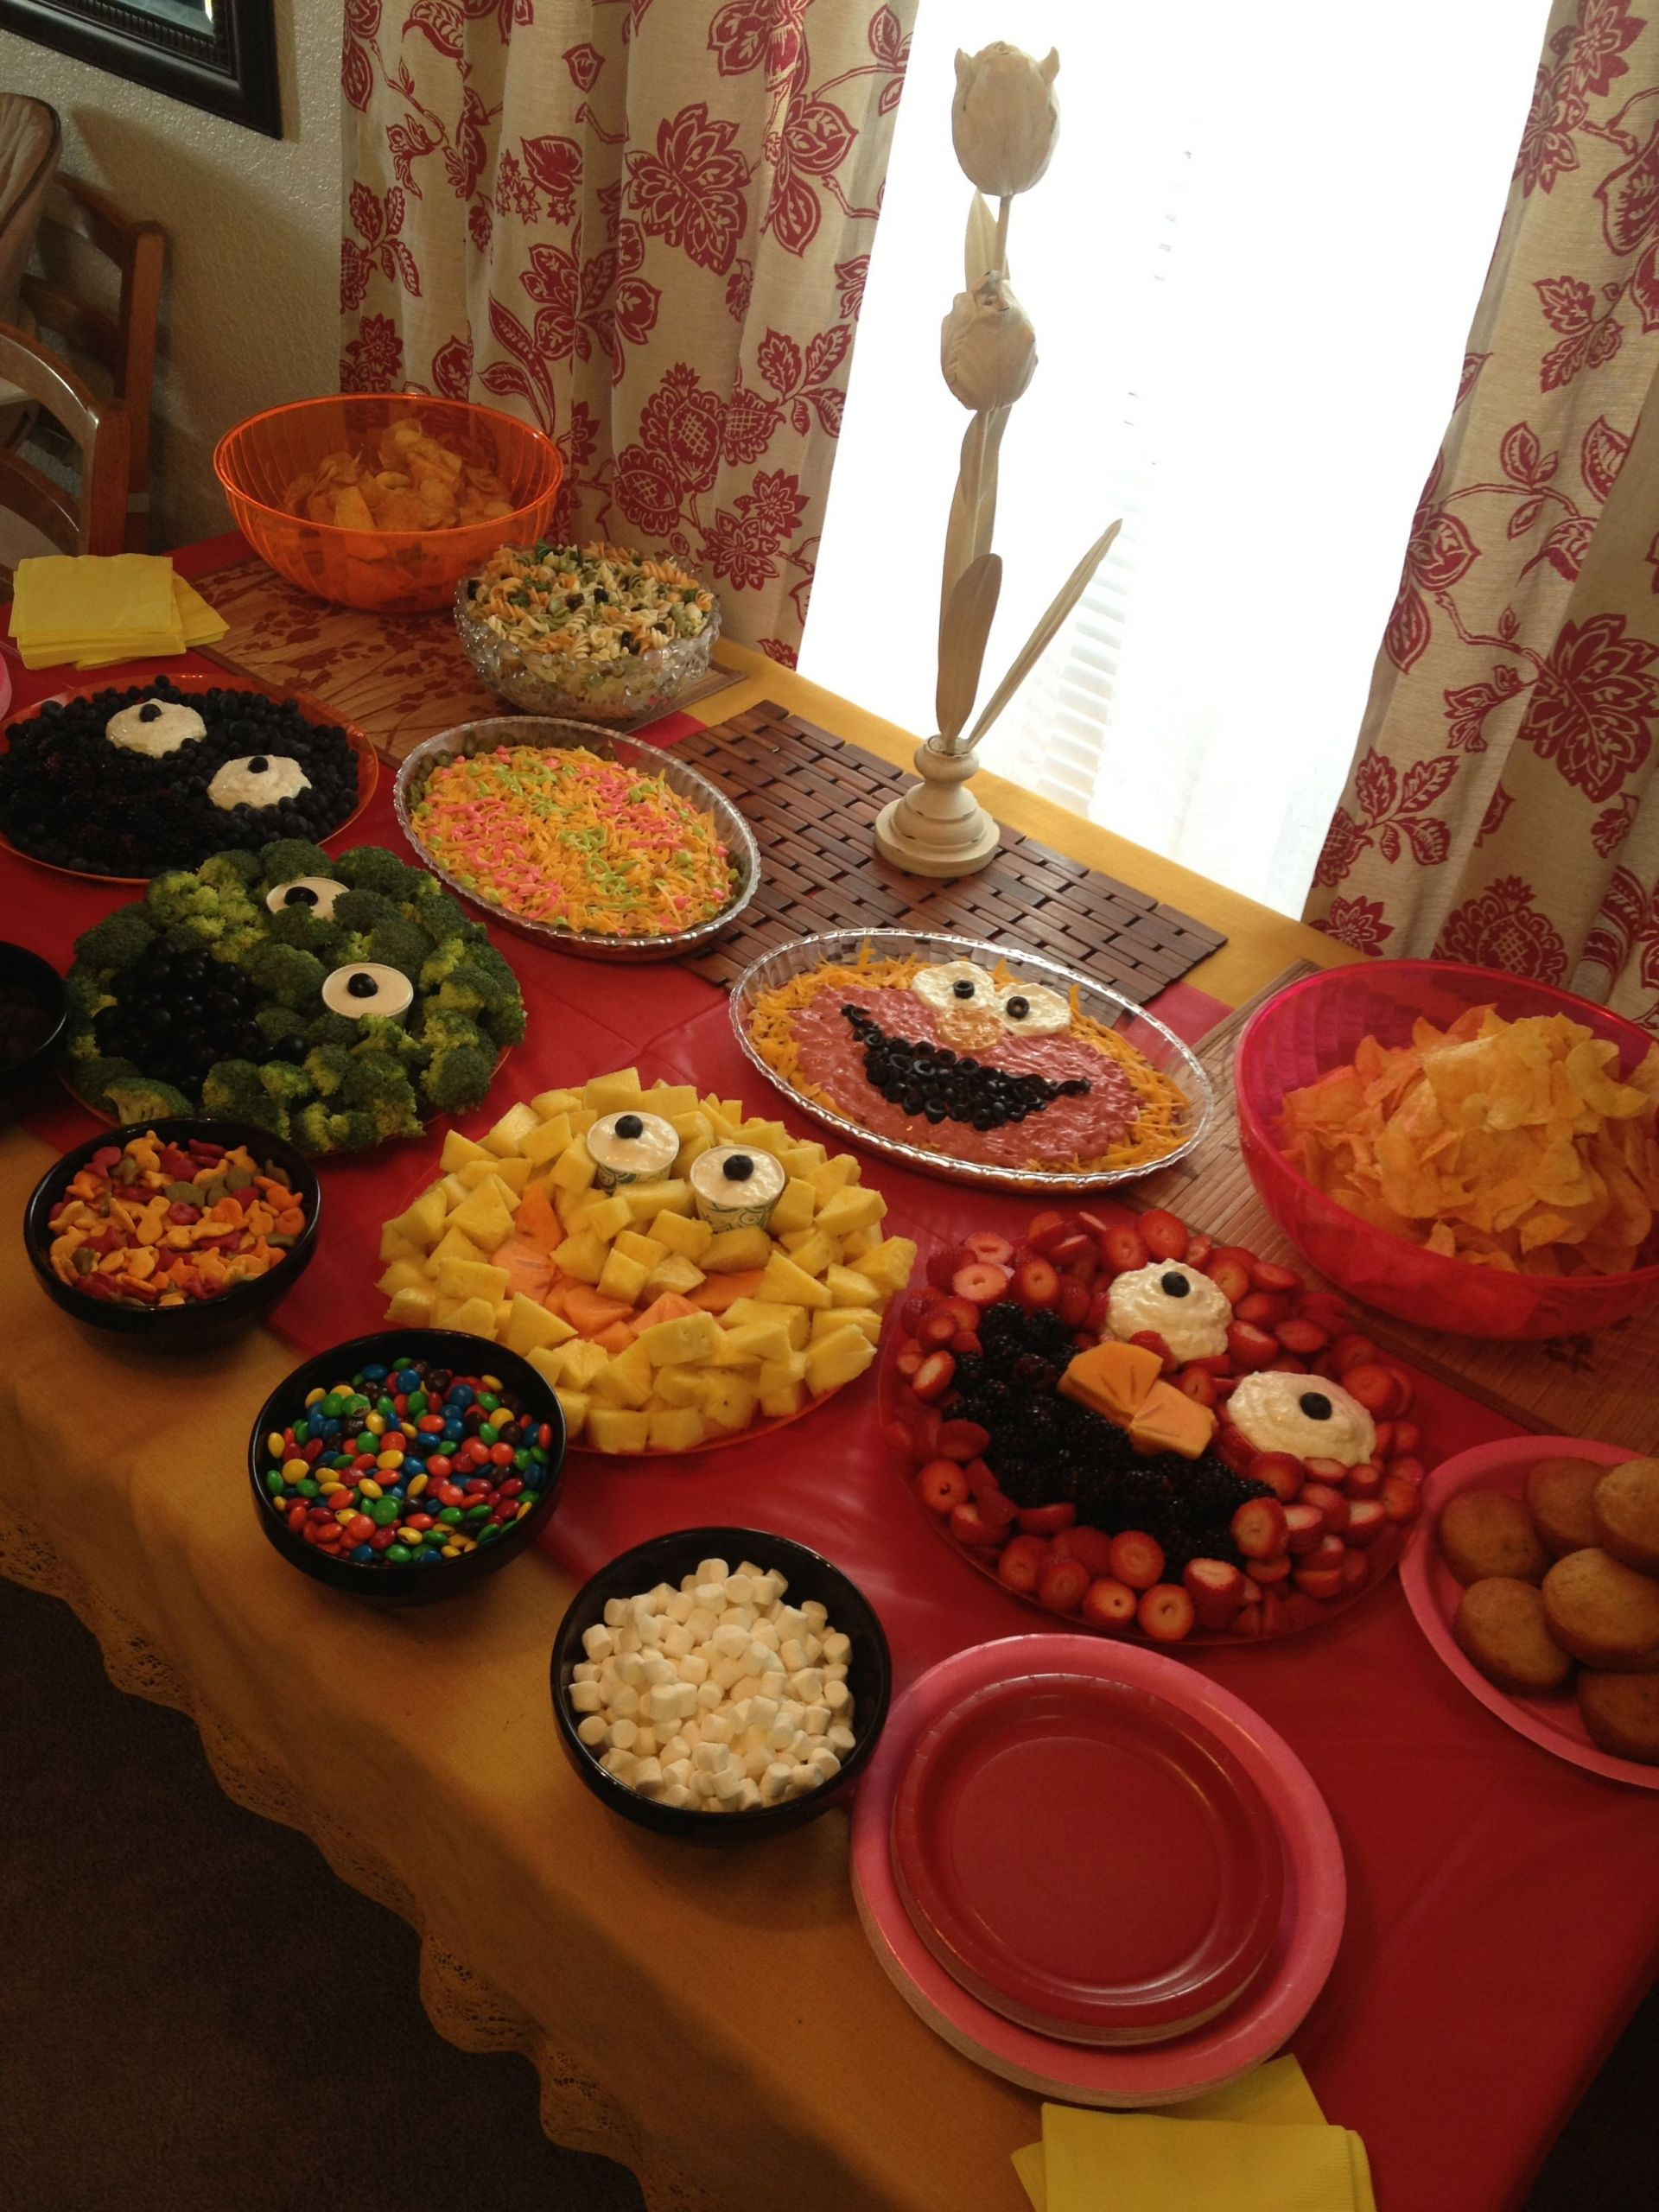 Food Ideas For A 2 Year Old Birthday Party  Elmo themed 2 year old birthday party